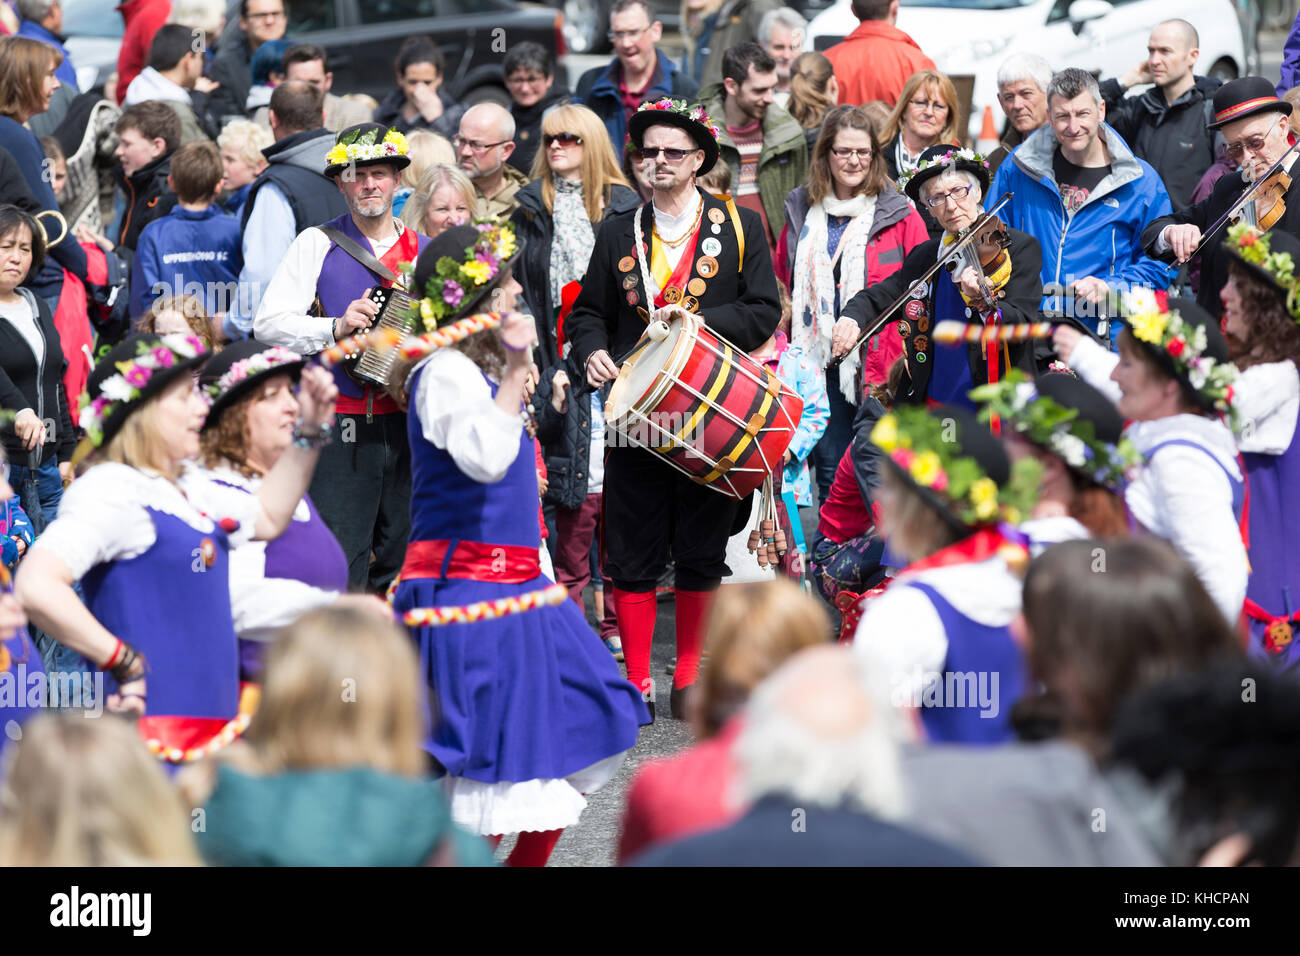 'The Mixed North West Morris Dancing Side based in Slaithwaite, Huddersfield.' Dancers at the Holmfirth - Stock Image